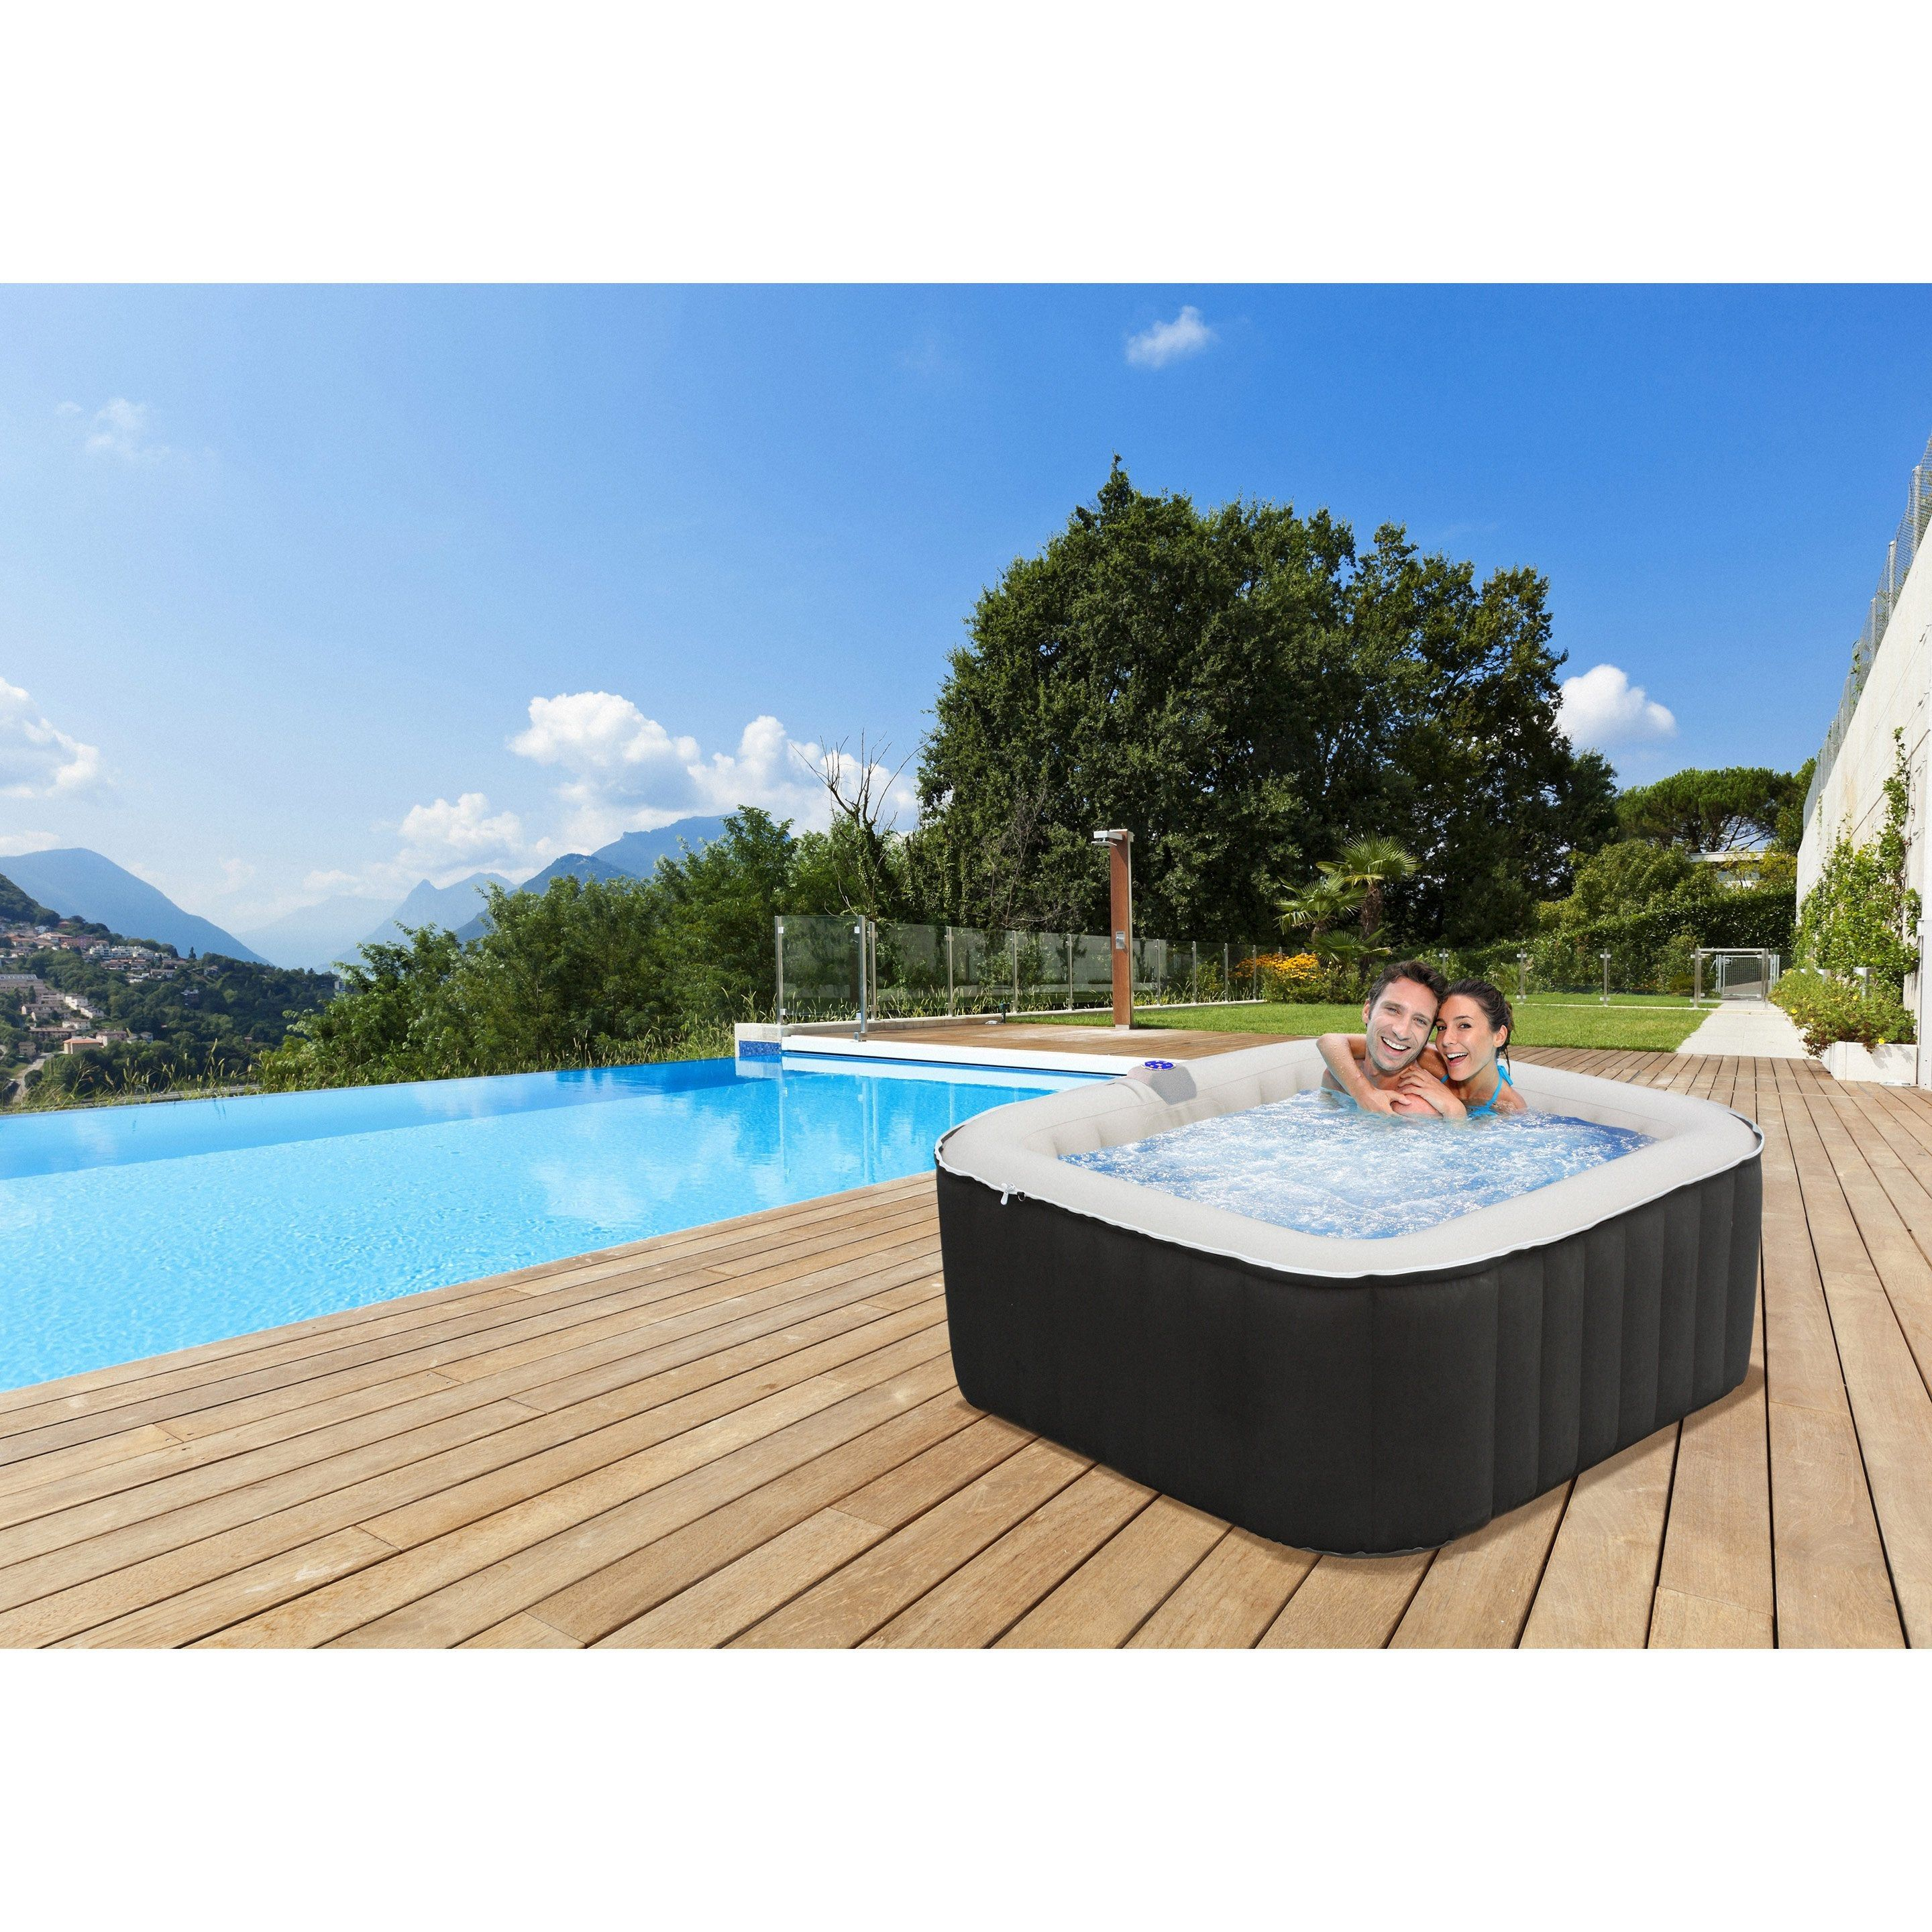 Jacuzzi Gonflable Leroy Merlin spa gonflable pur 4 personnes cebu water'clip bcf outdoor